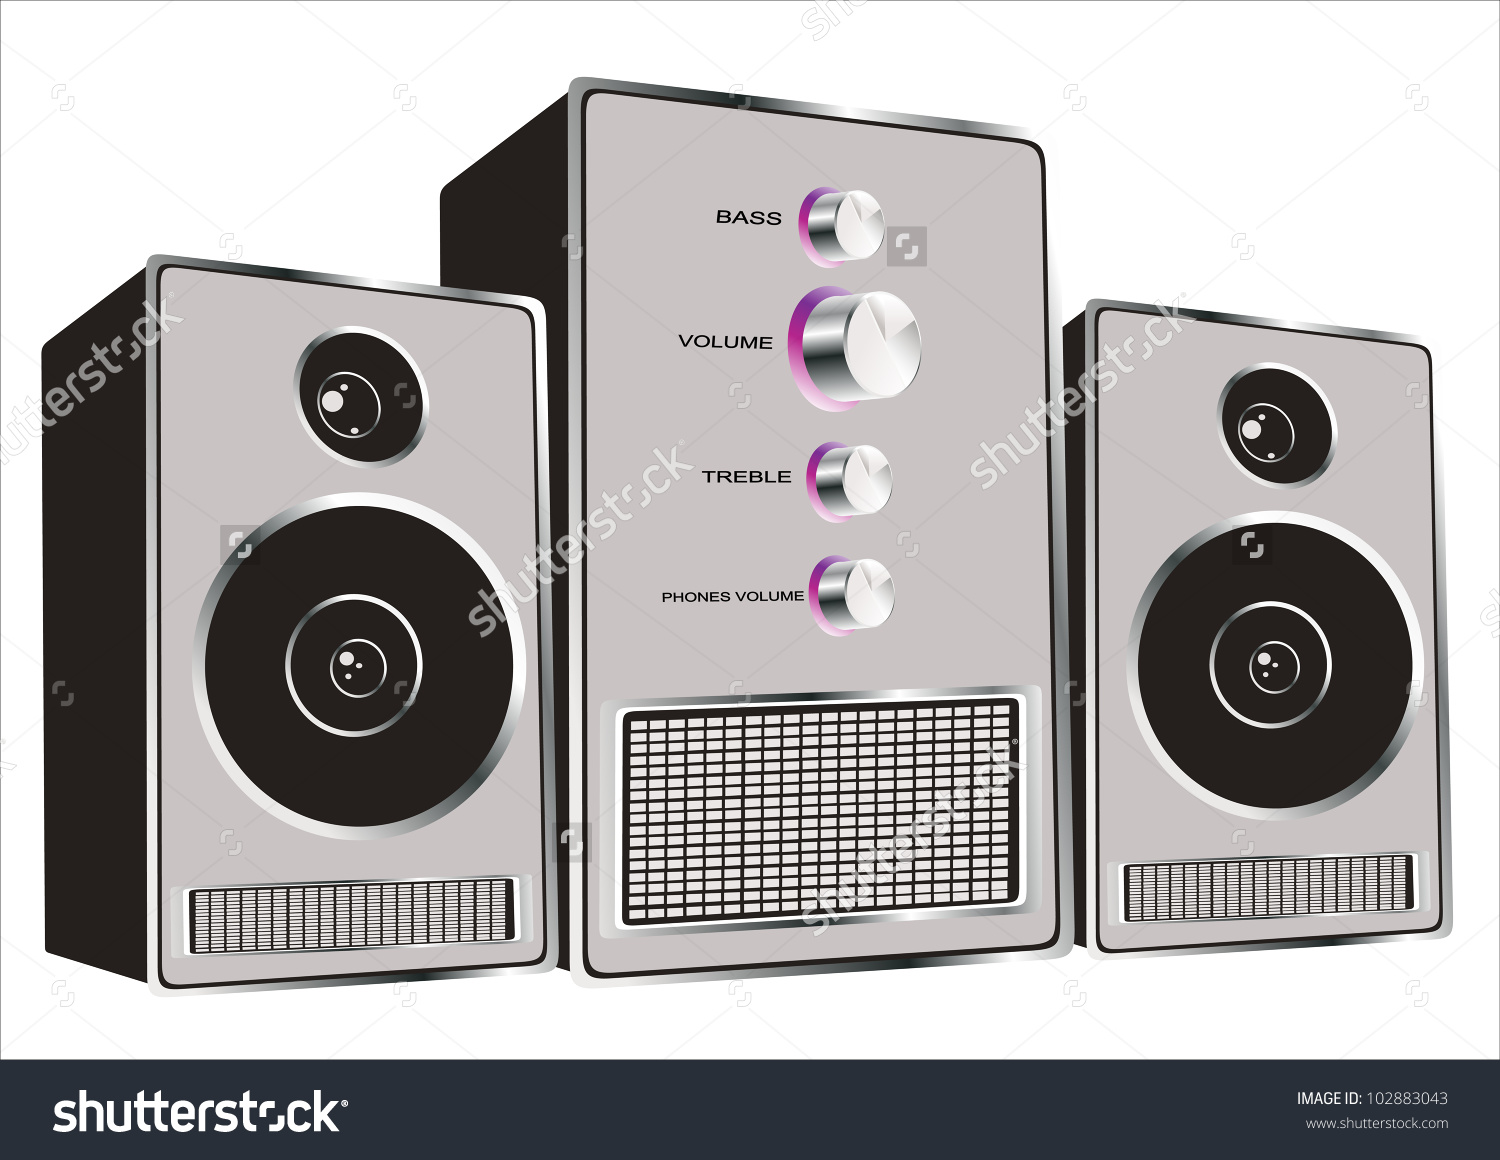 Music System Clipart